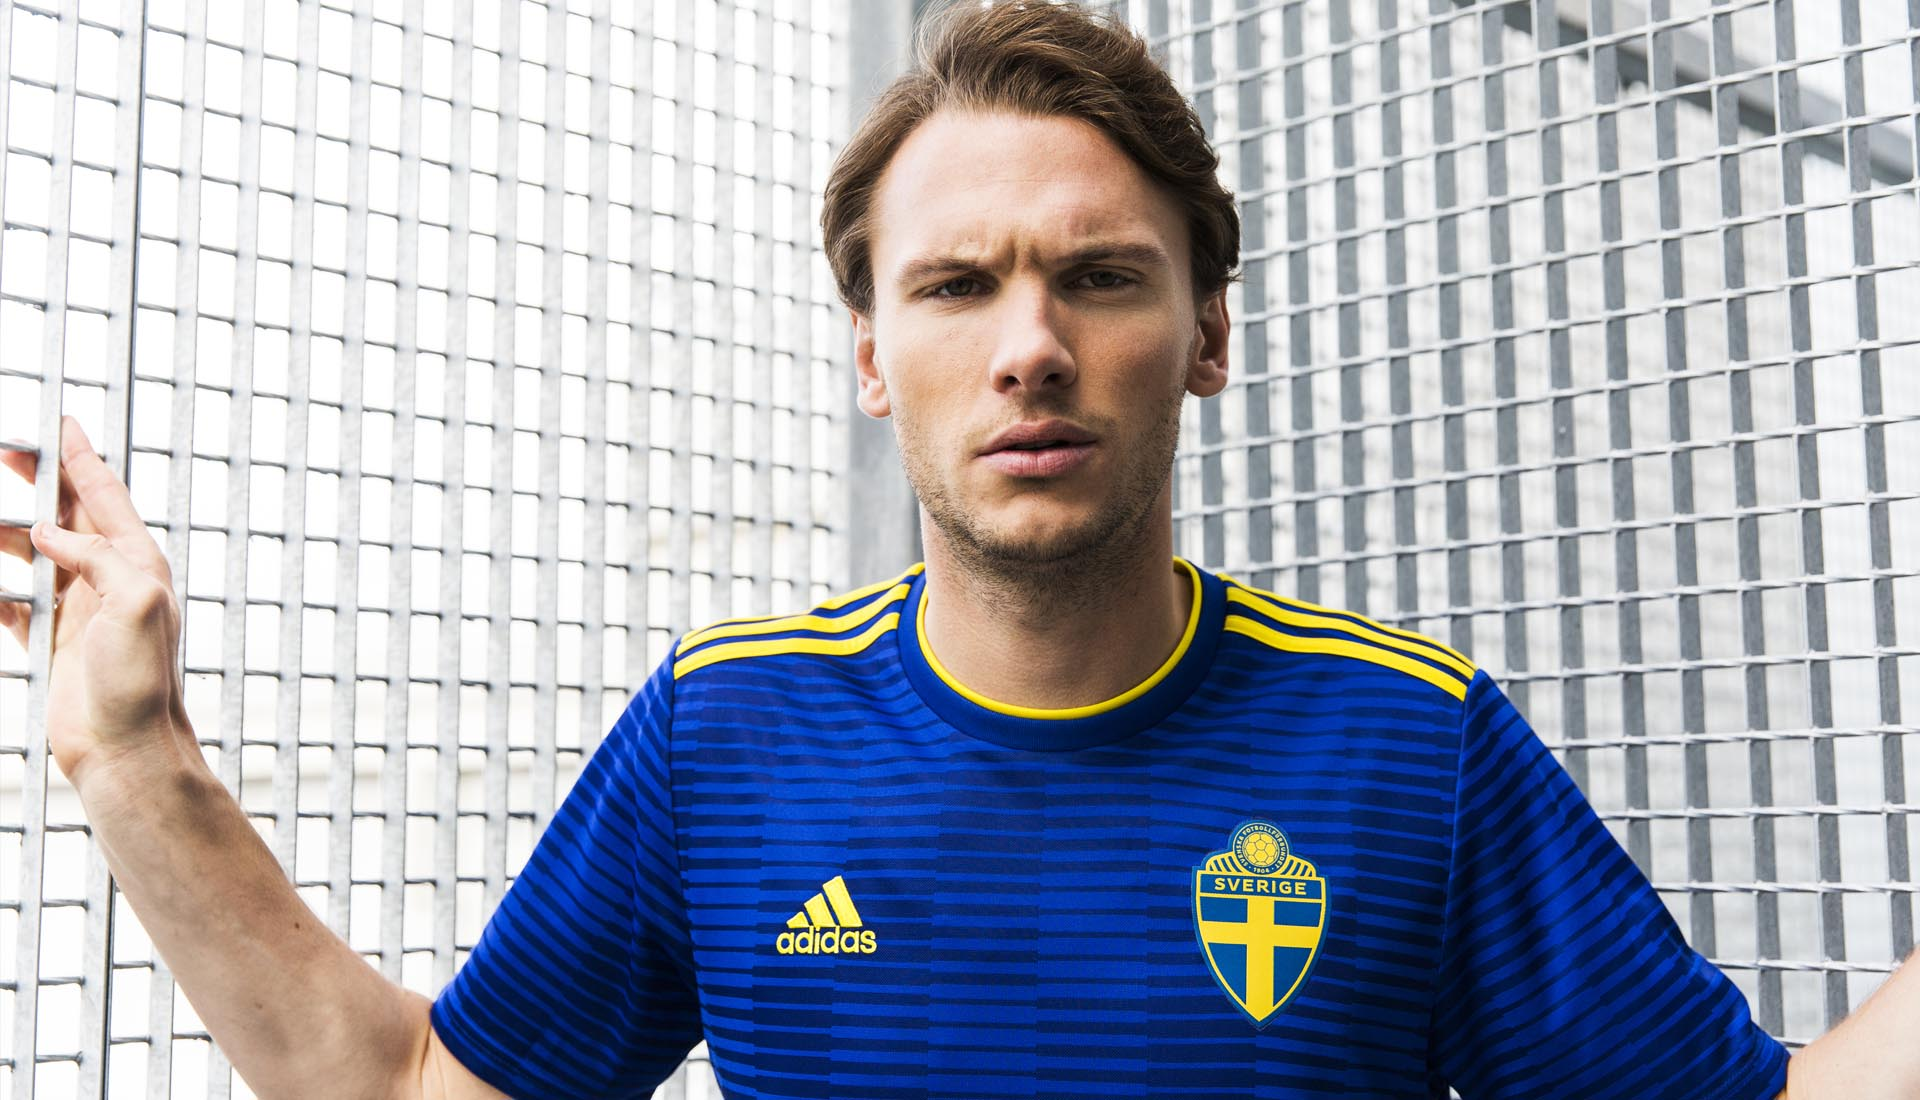 5fead50090b adidas Launch The Sweden 2018 World Cup Away Shirt - SoccerBible